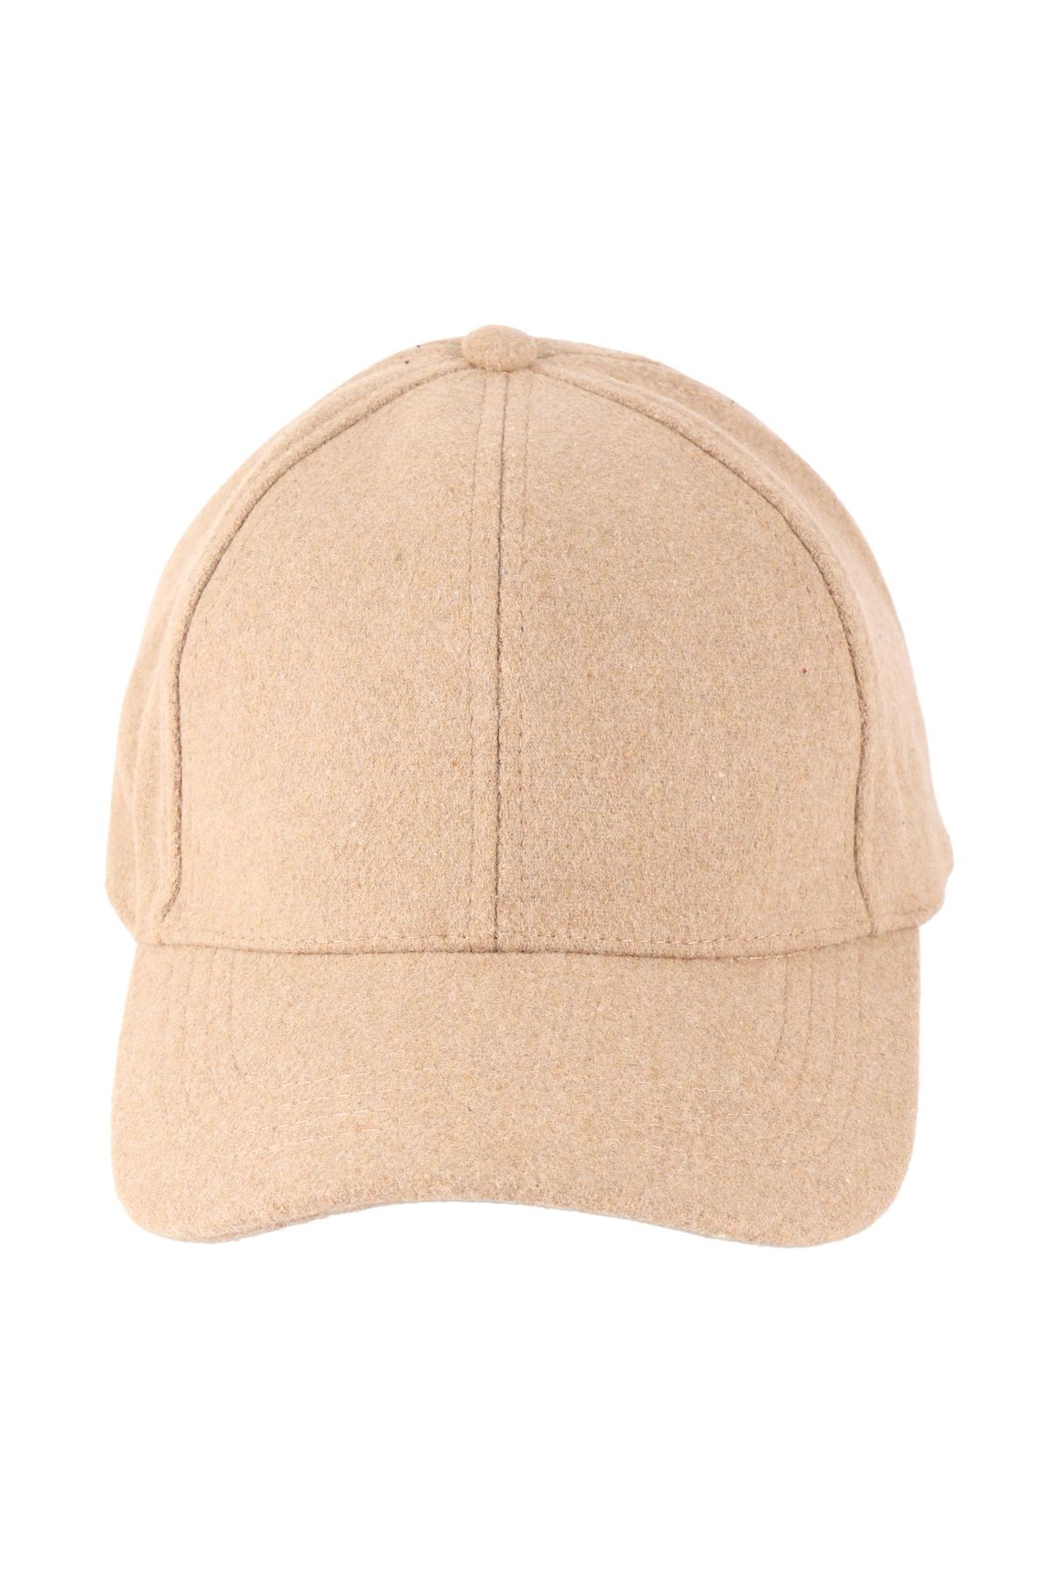 Riah Fashion Simple-Neutral-Color-Cap - Front Cropped Image